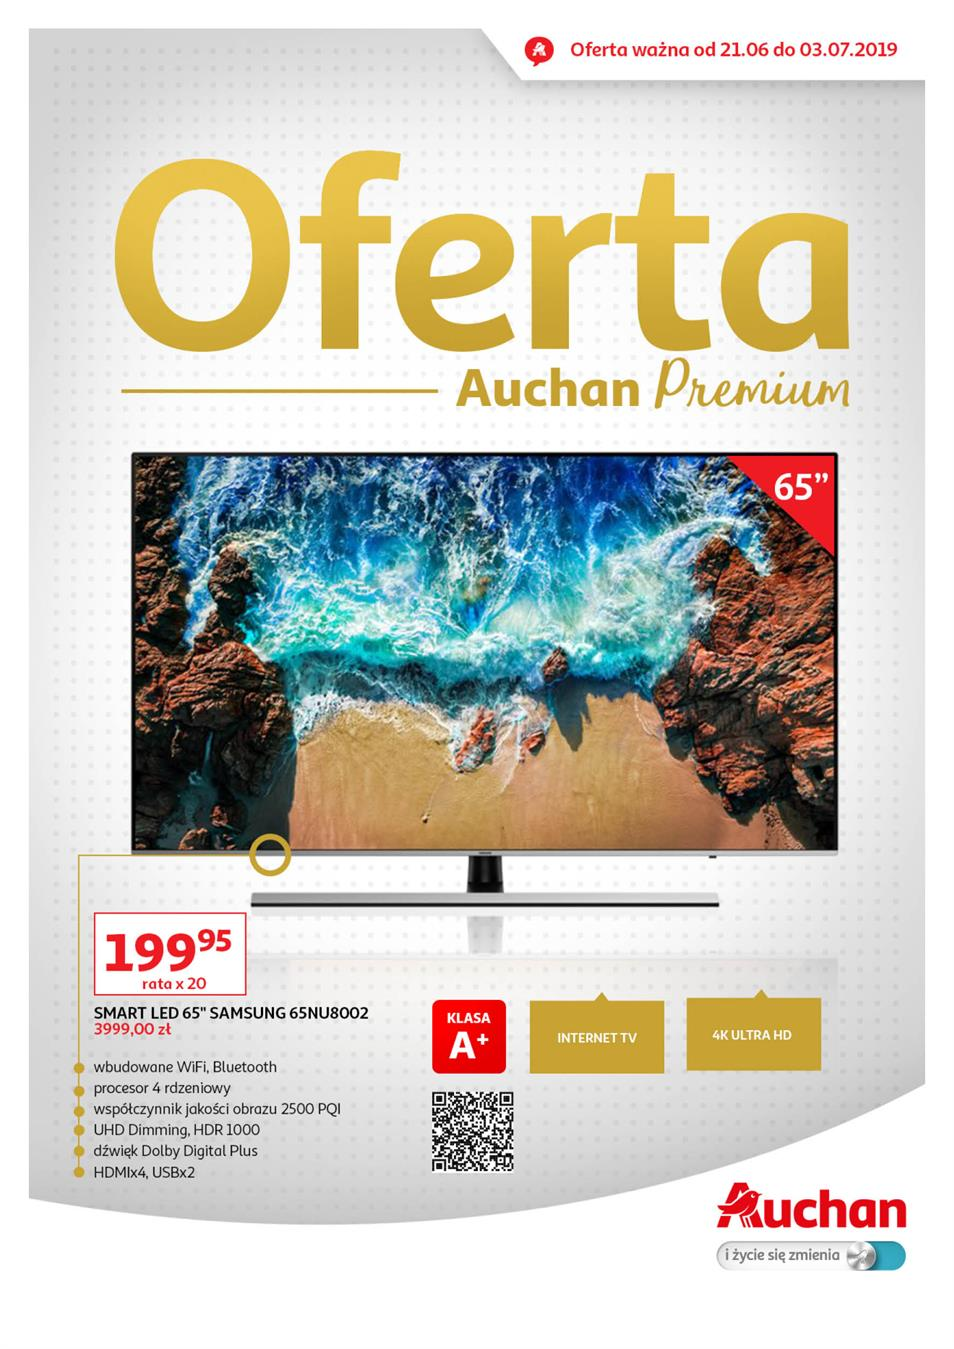 Gazetka Auchan Polska Sp. z o.o. nr 1 od 2019-06-21 do 2019-07-03